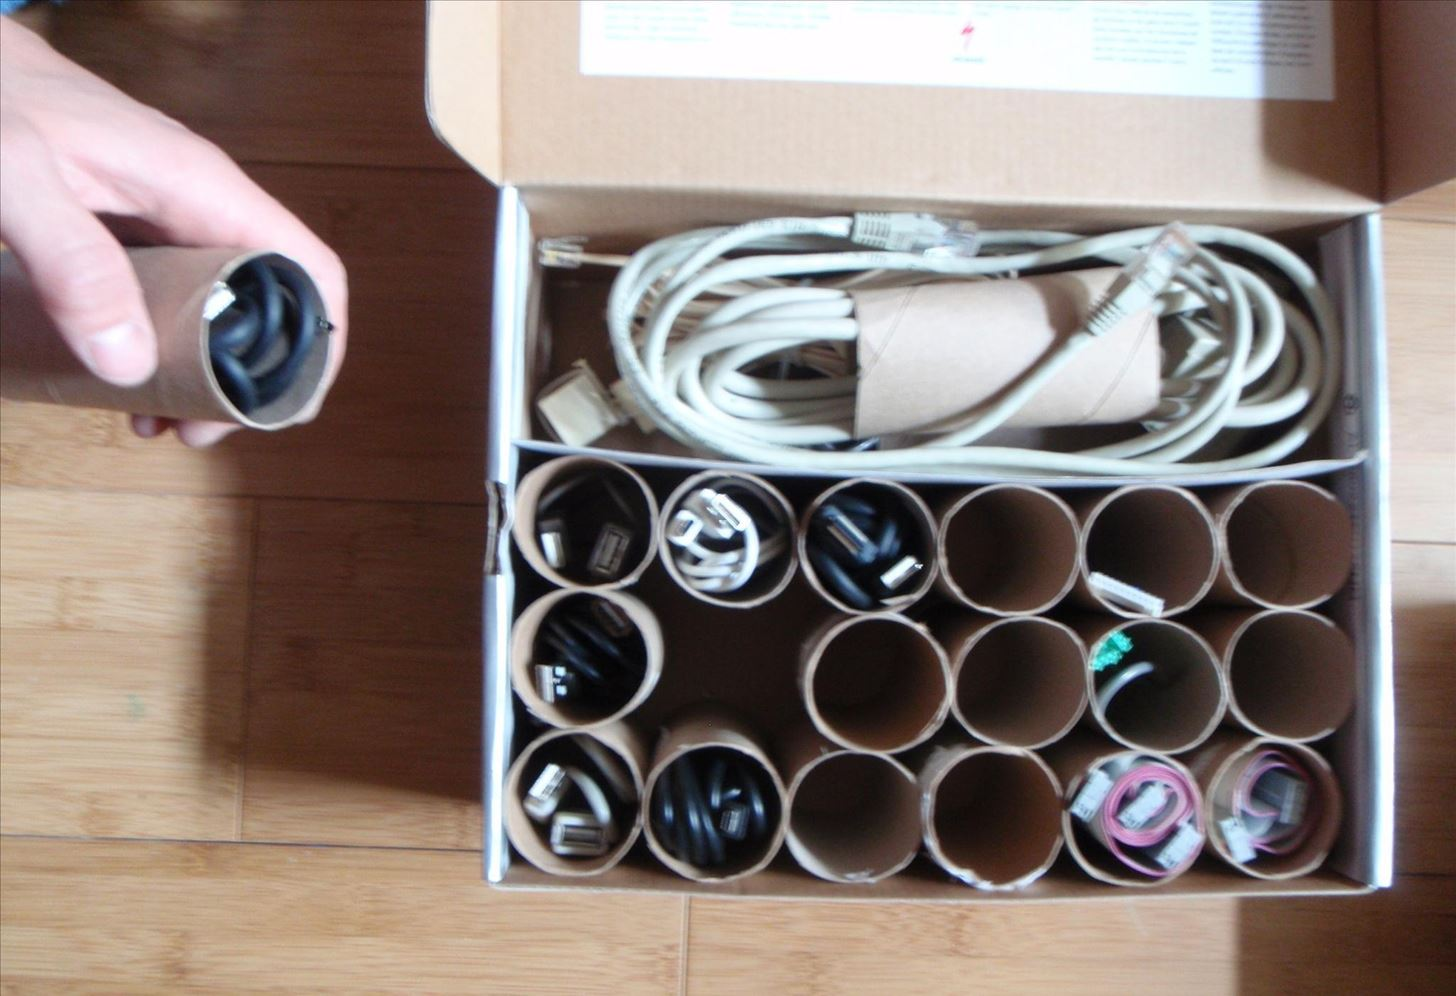 Miniature TP Tube Dioramas, Plus 4 Other Ideas for Reusing Toilet Paper Tubes